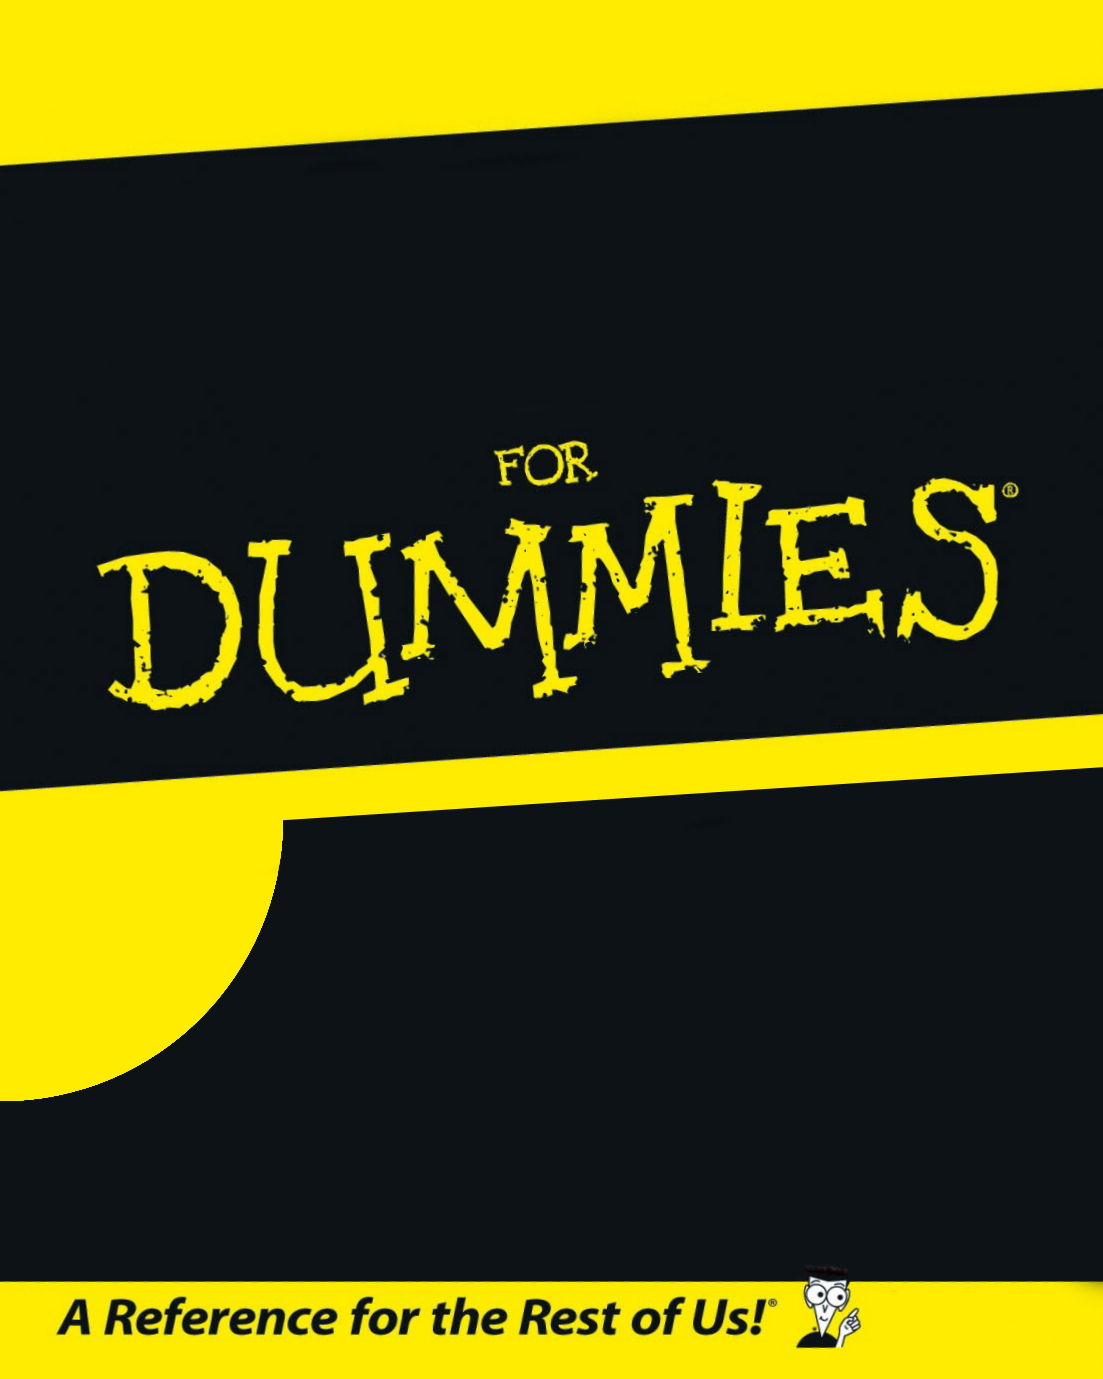 for dummies blank template imgflip With for dummies template book cover